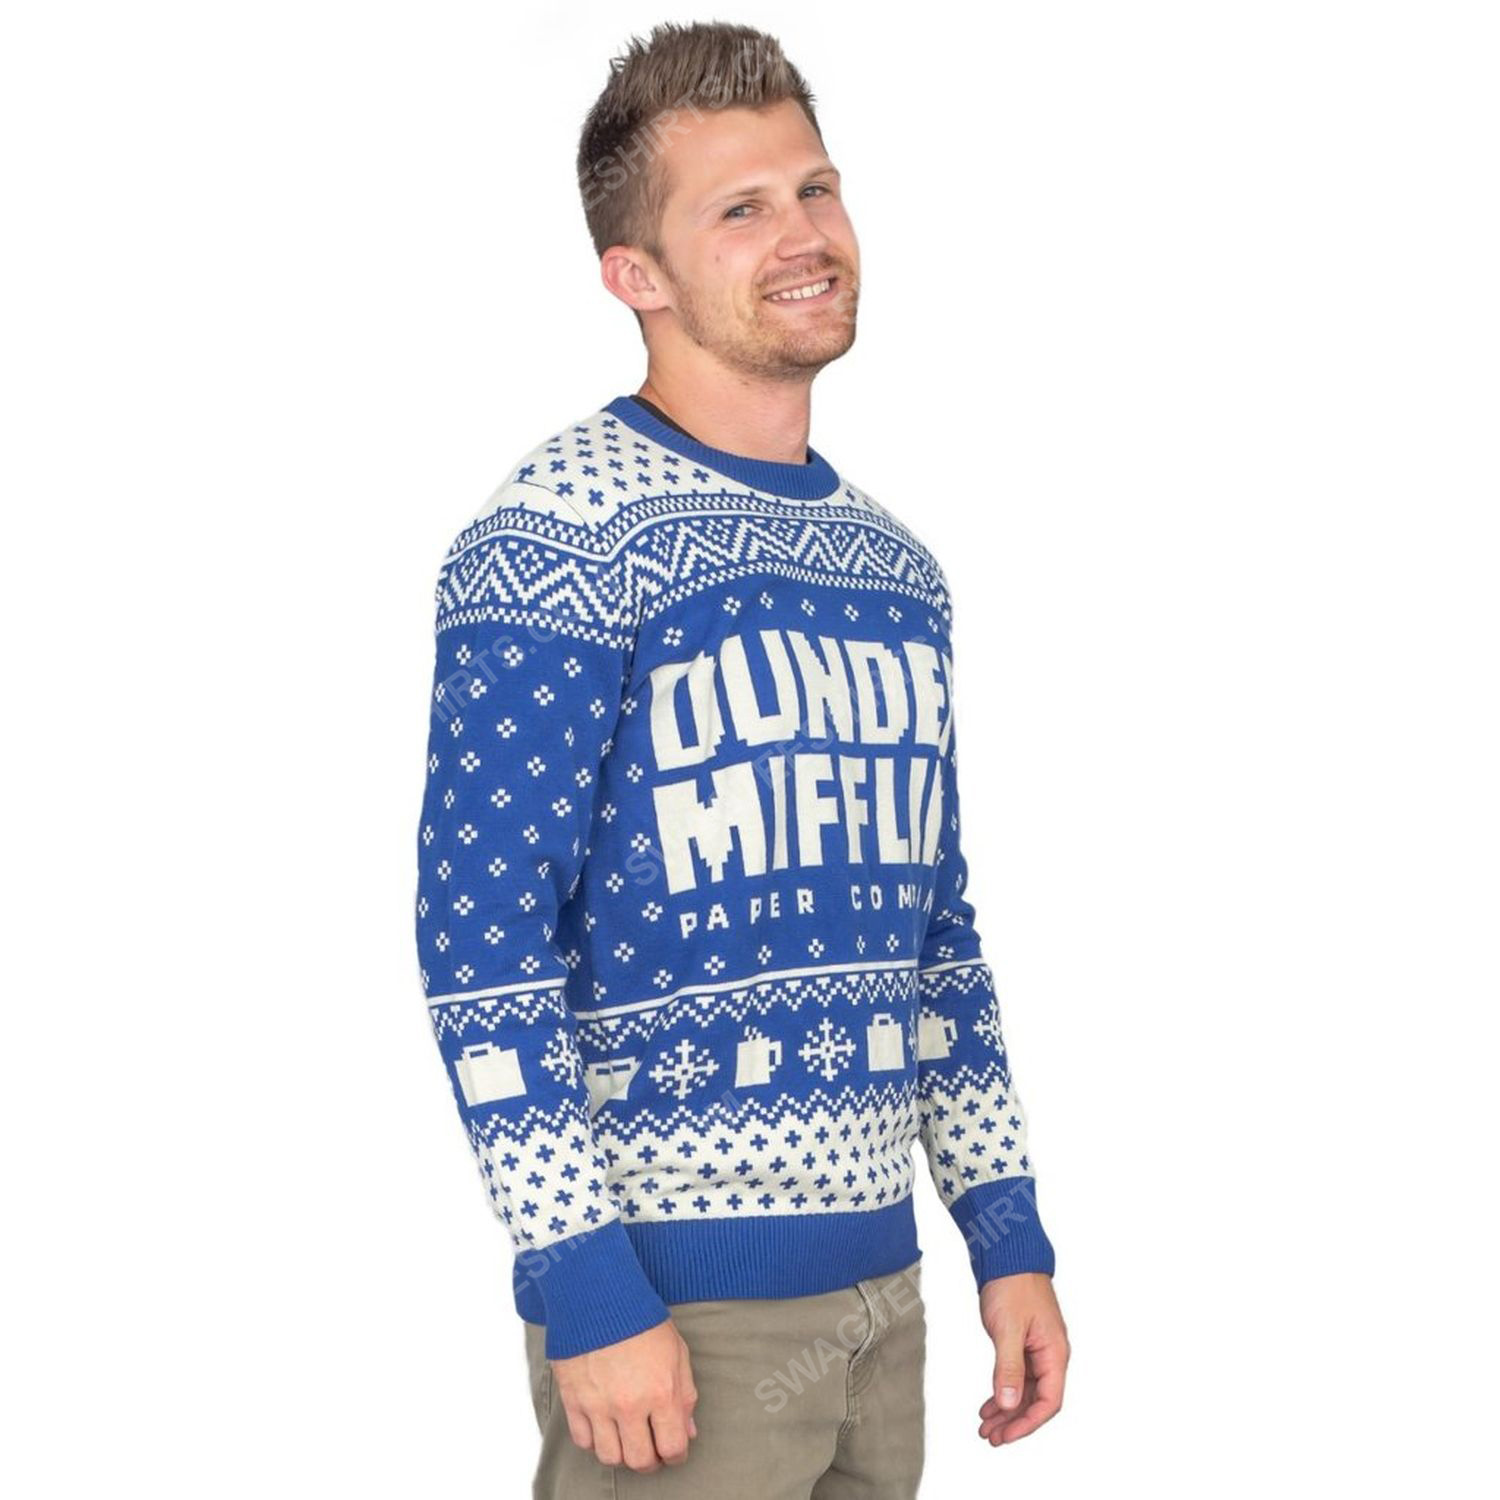 TV show the office dunder mifflin full print ugly christmas sweater 4